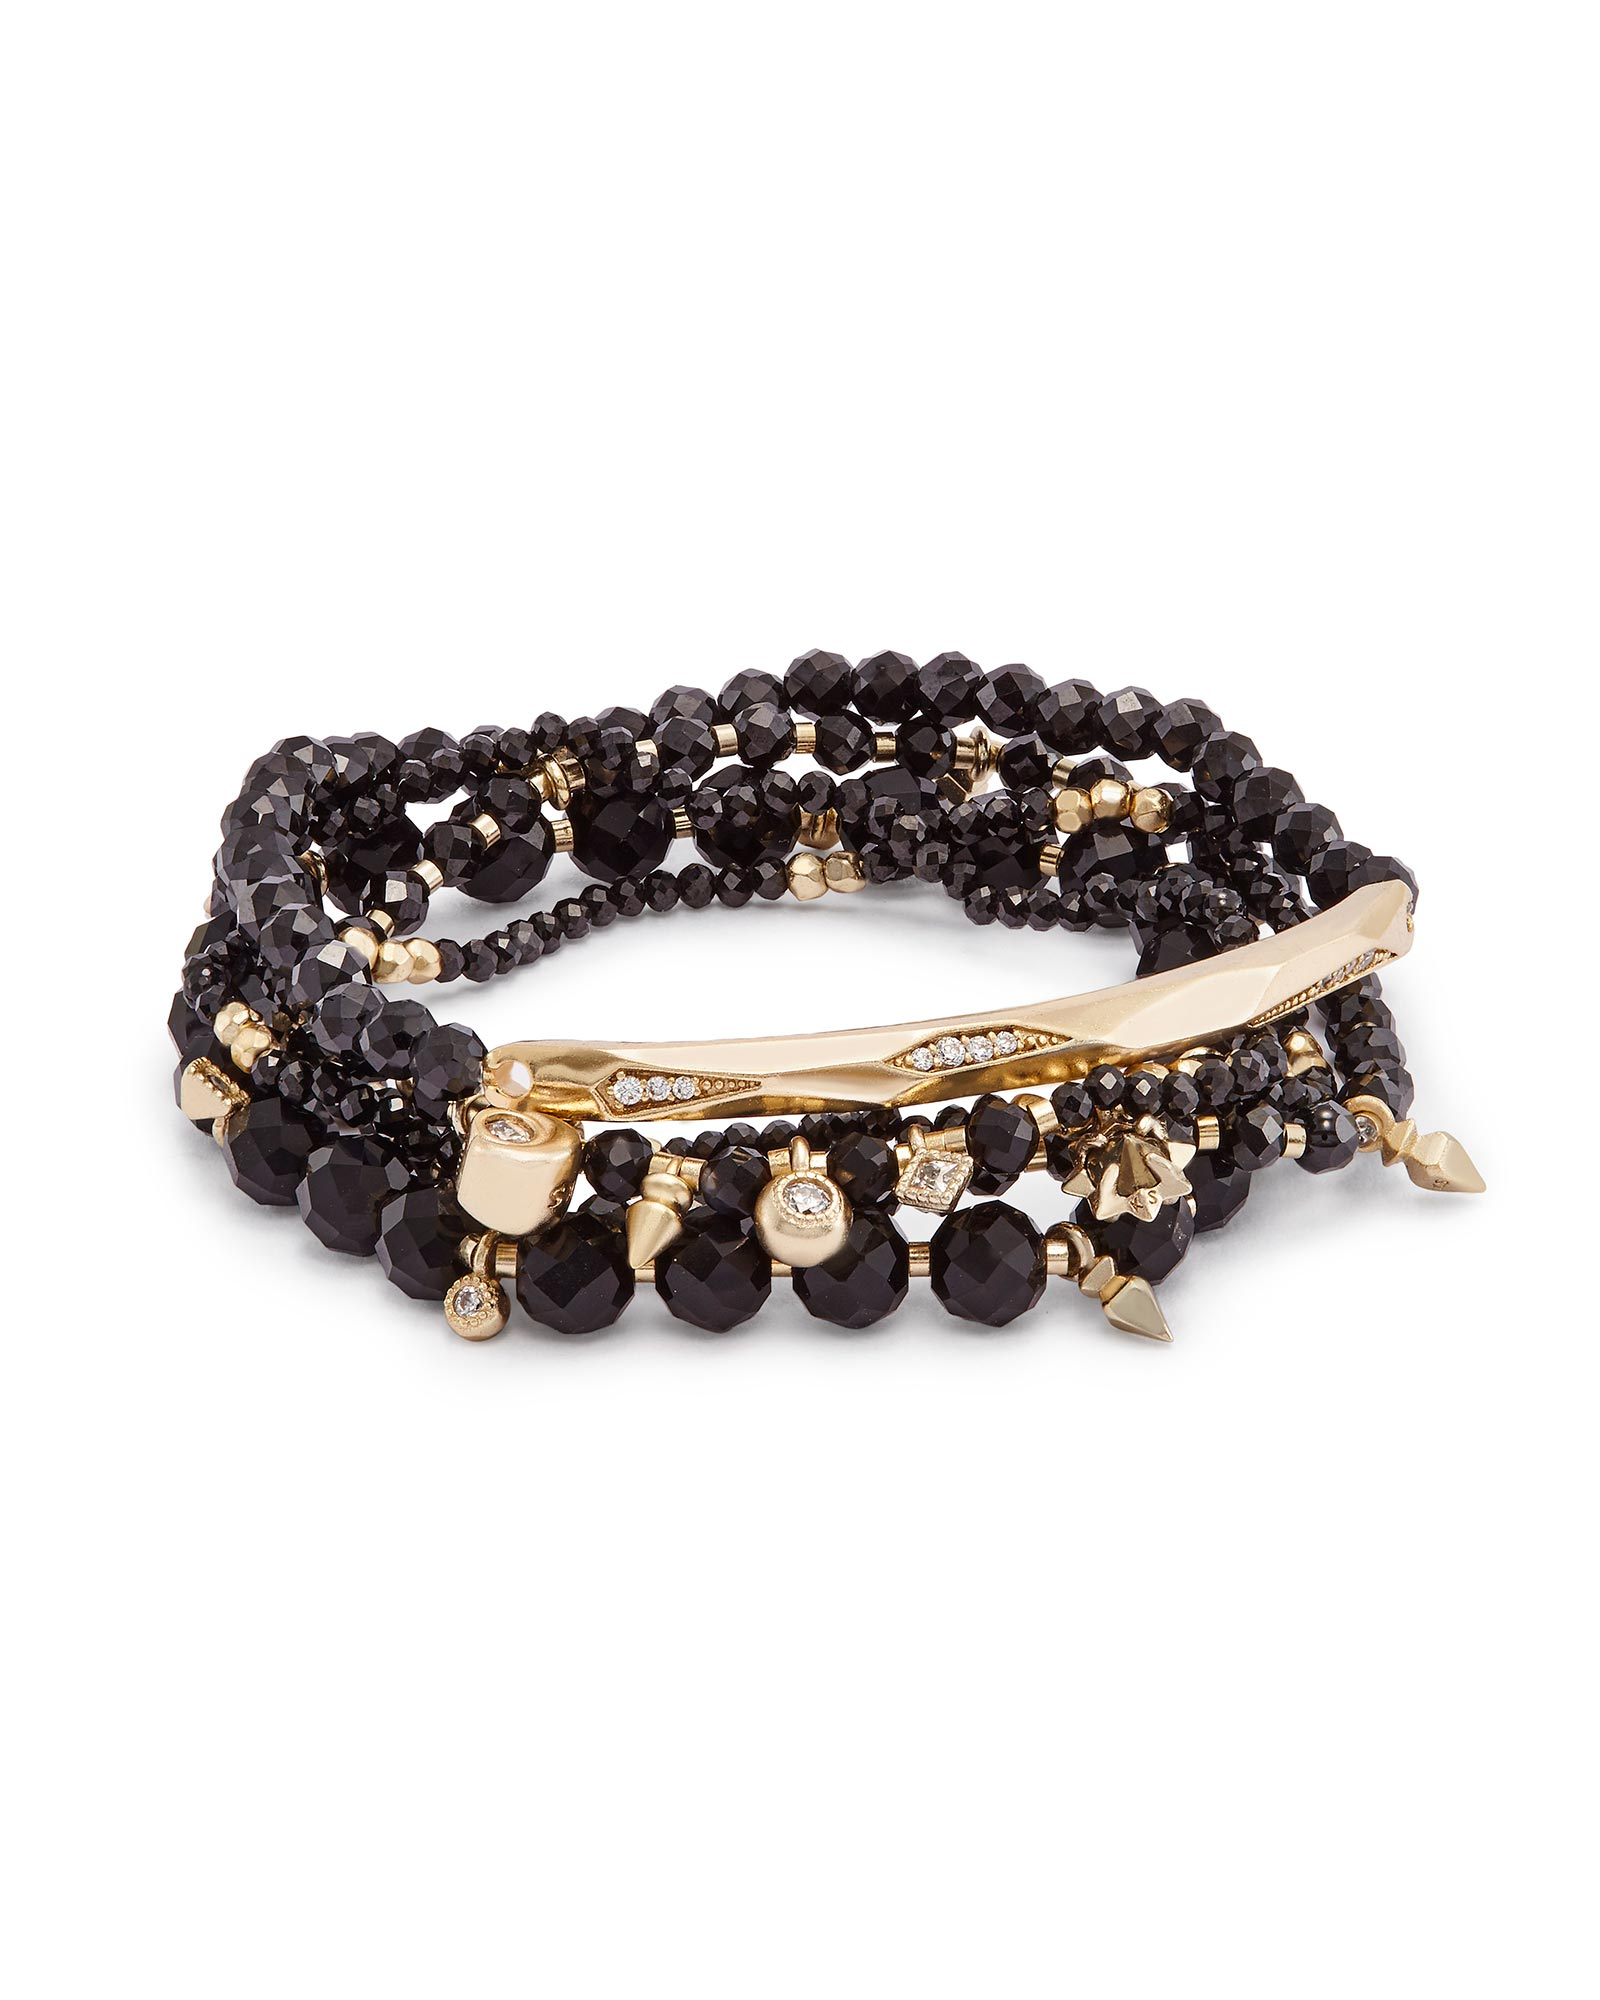 Supak Beaded Bracelet Set in Brass